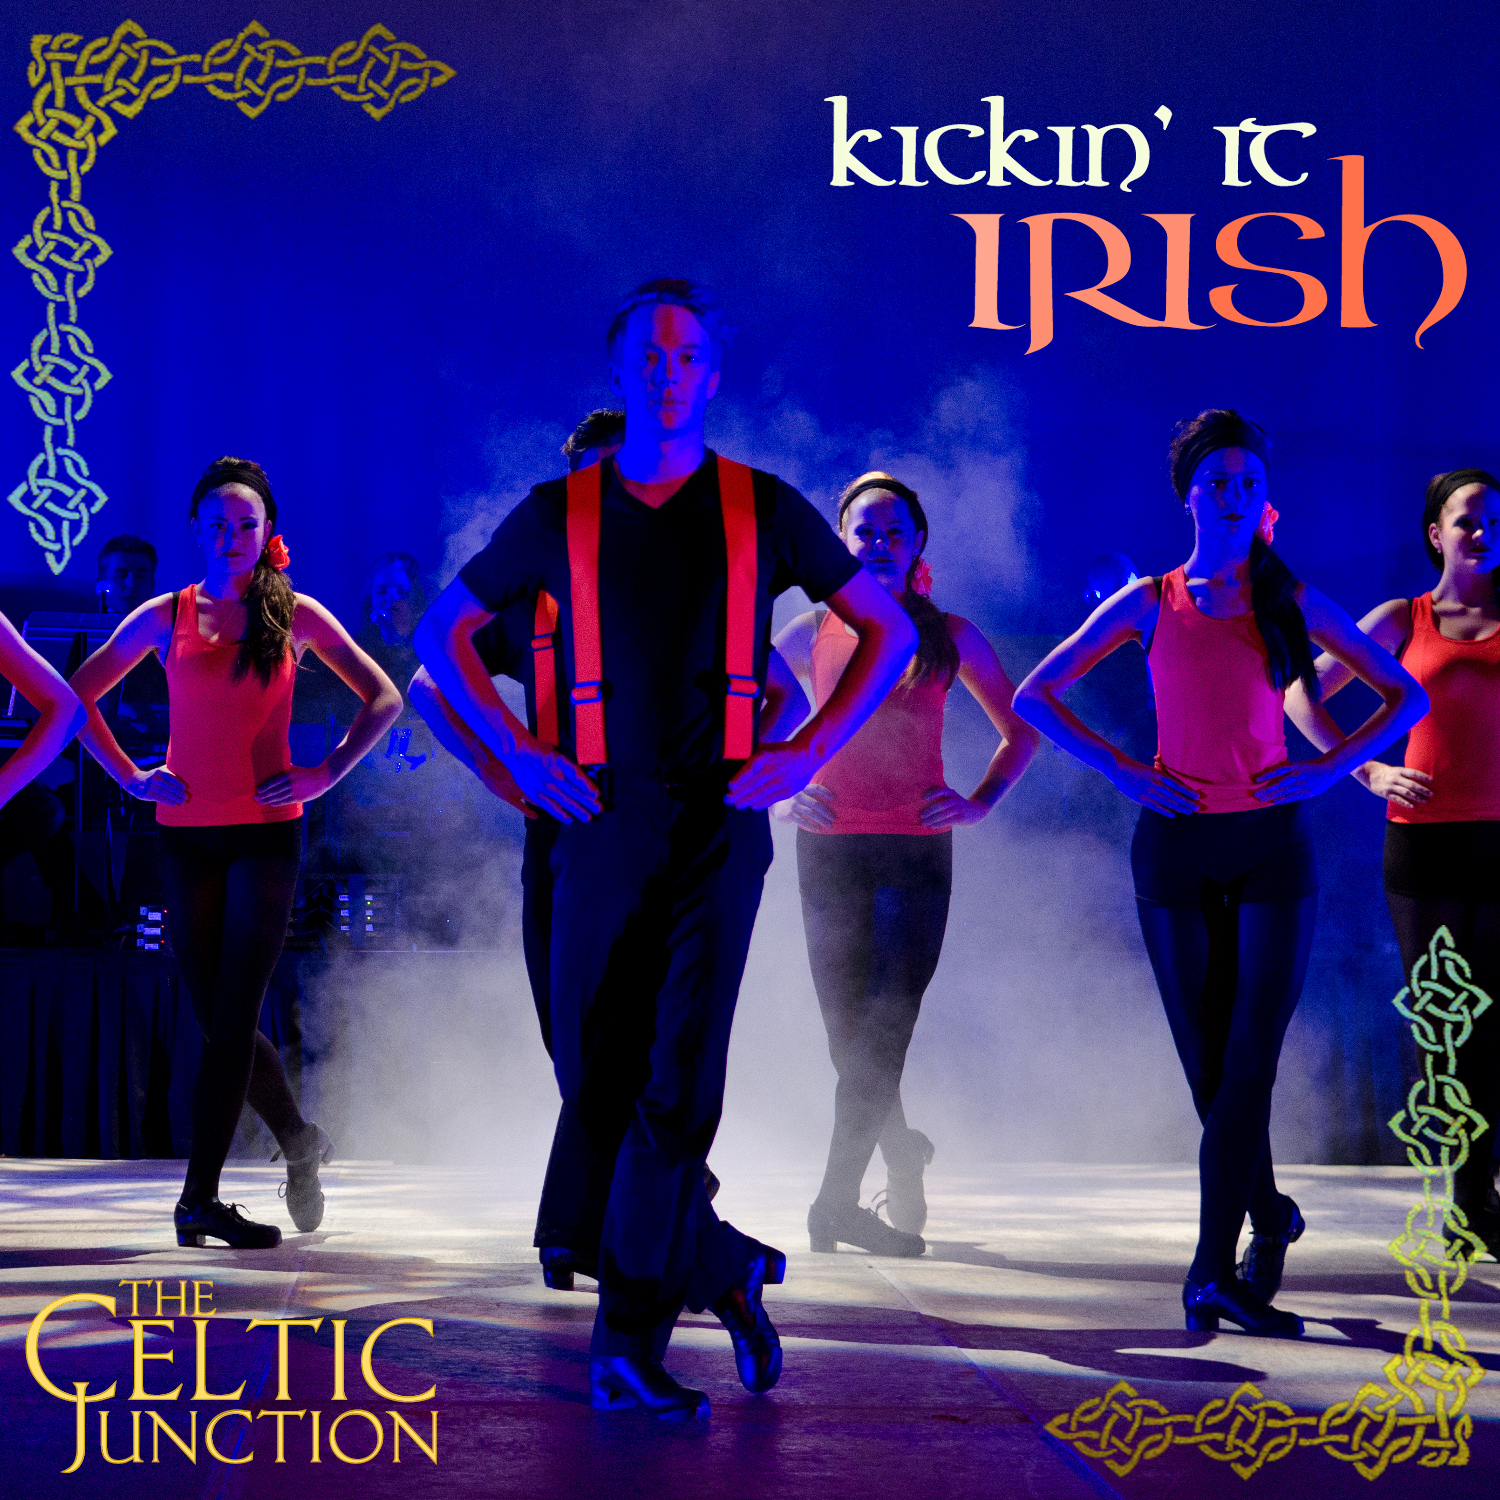 Kickin' It Irish - last show this season at CJAC